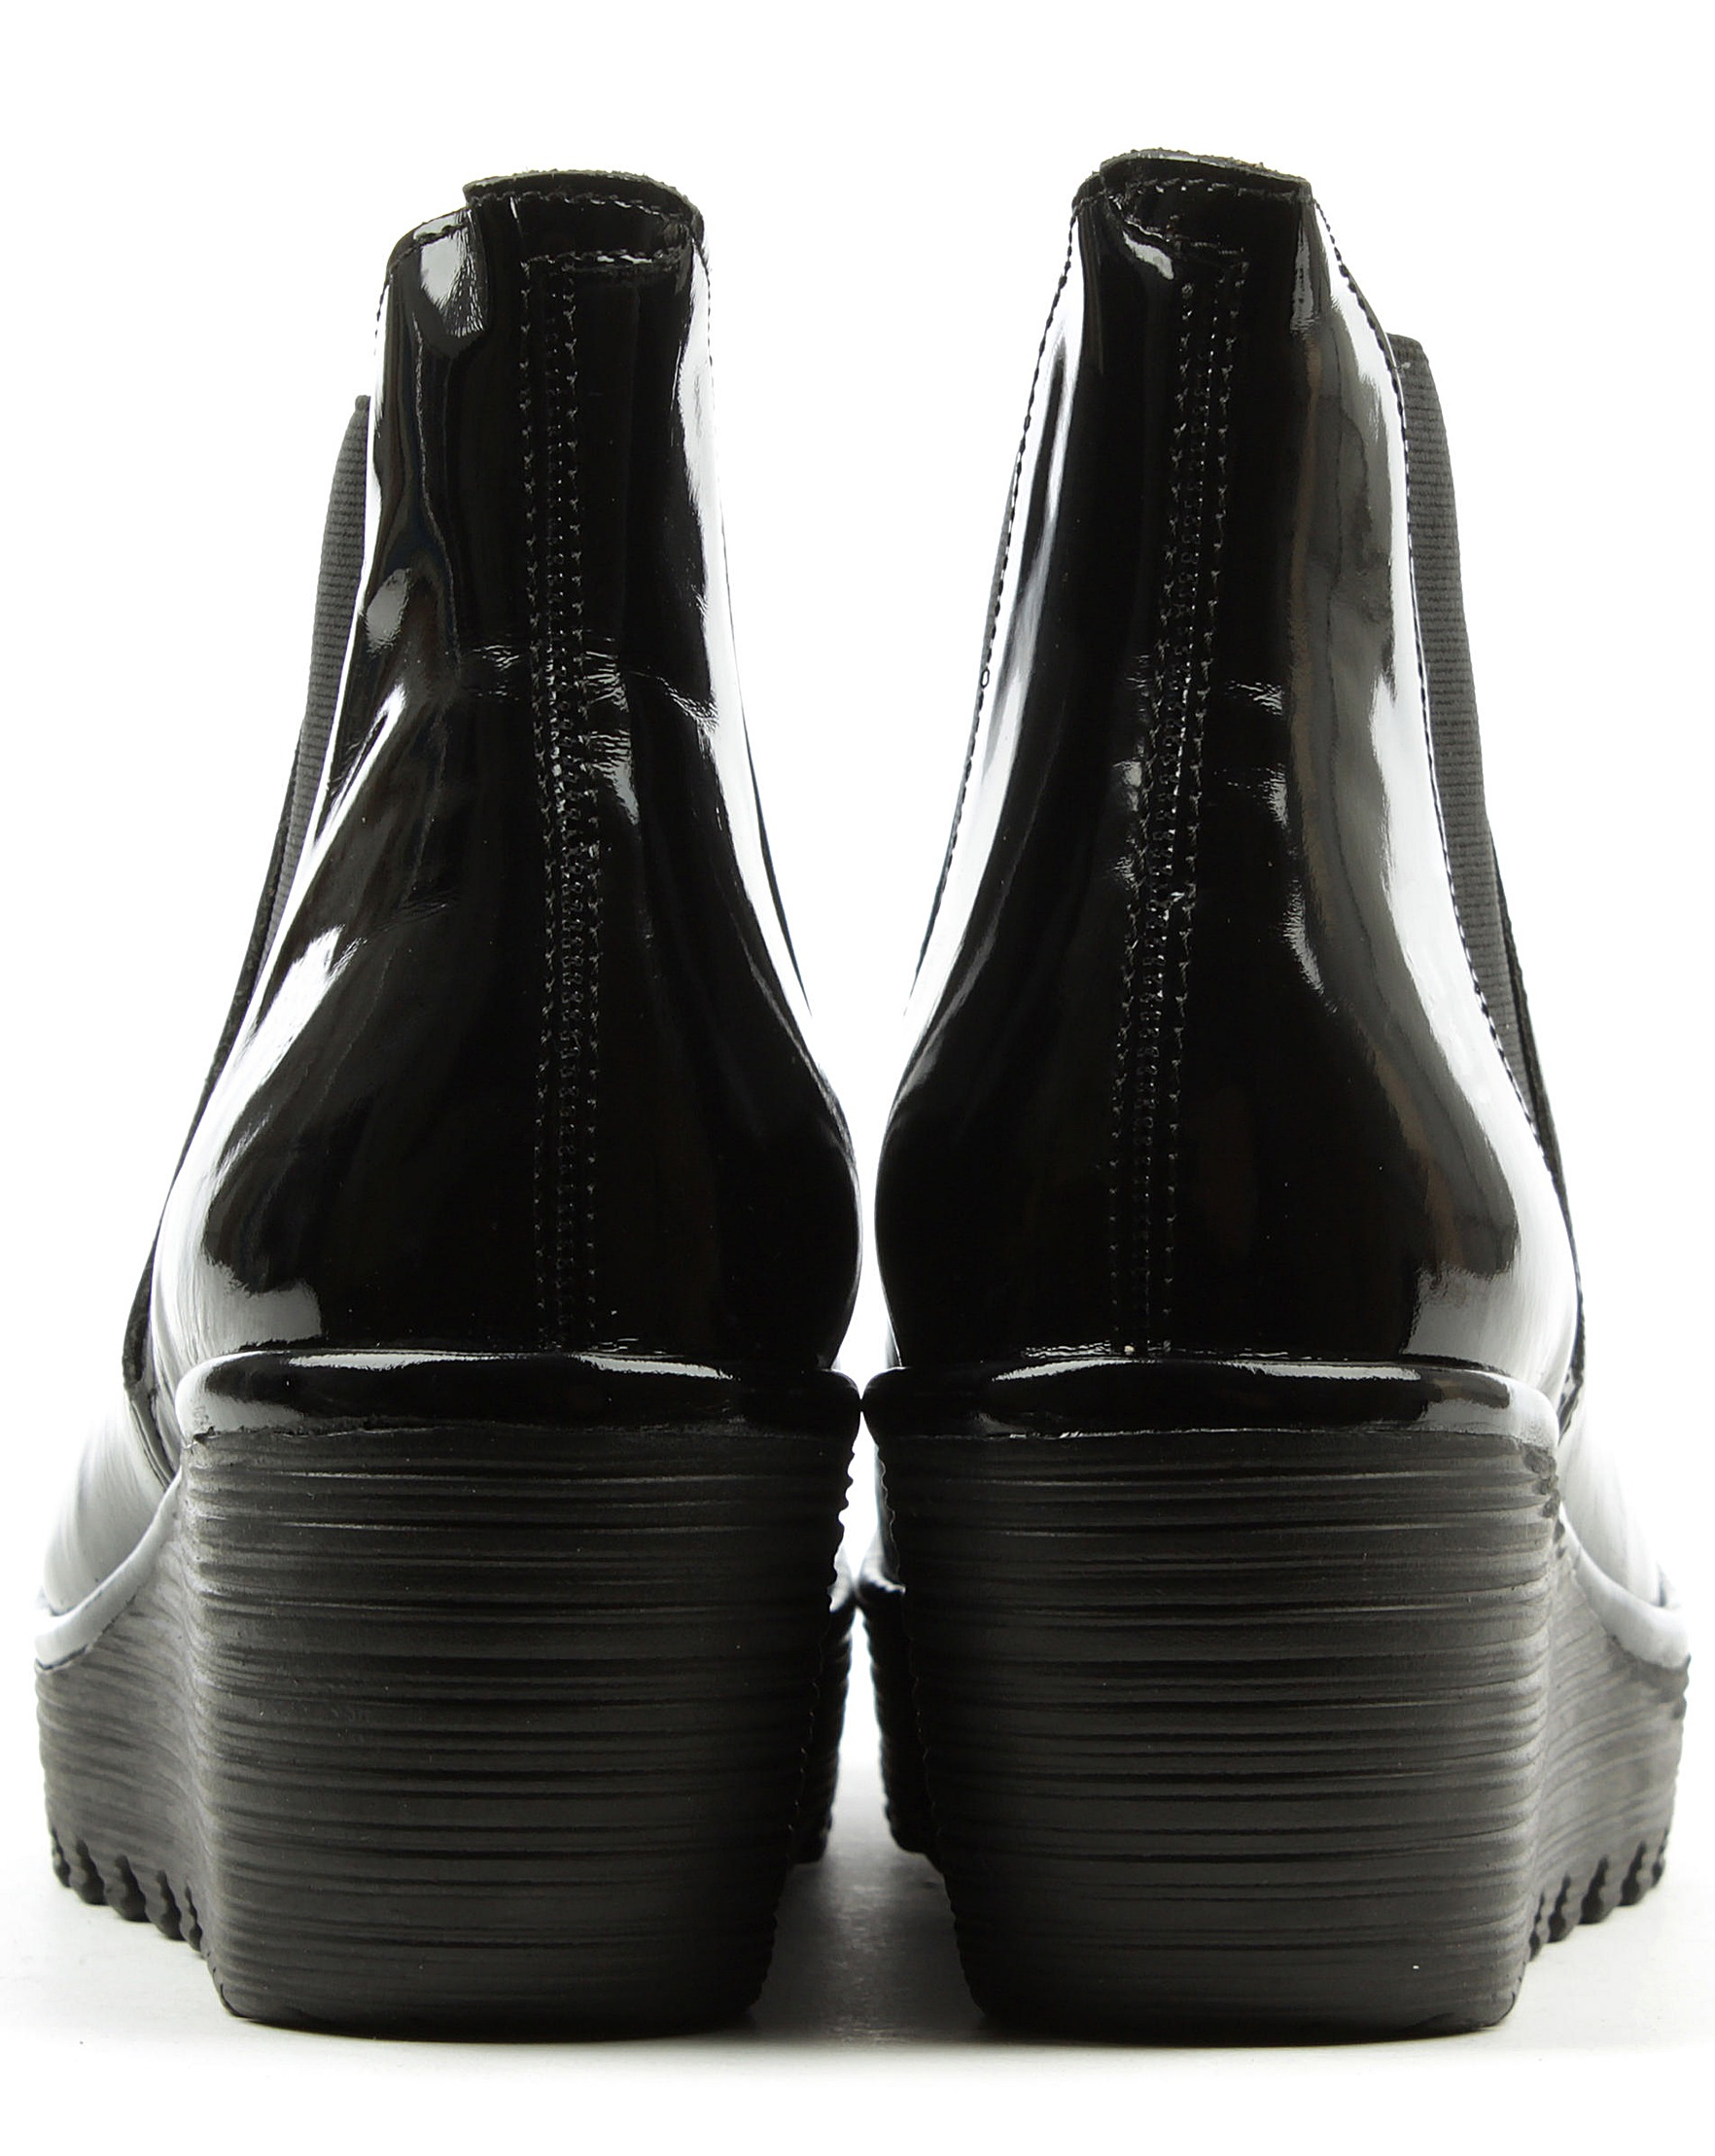 6ecb100ad389 JOSEPH Ankle boots Lust List Boots Leather chelsea boots Shoe